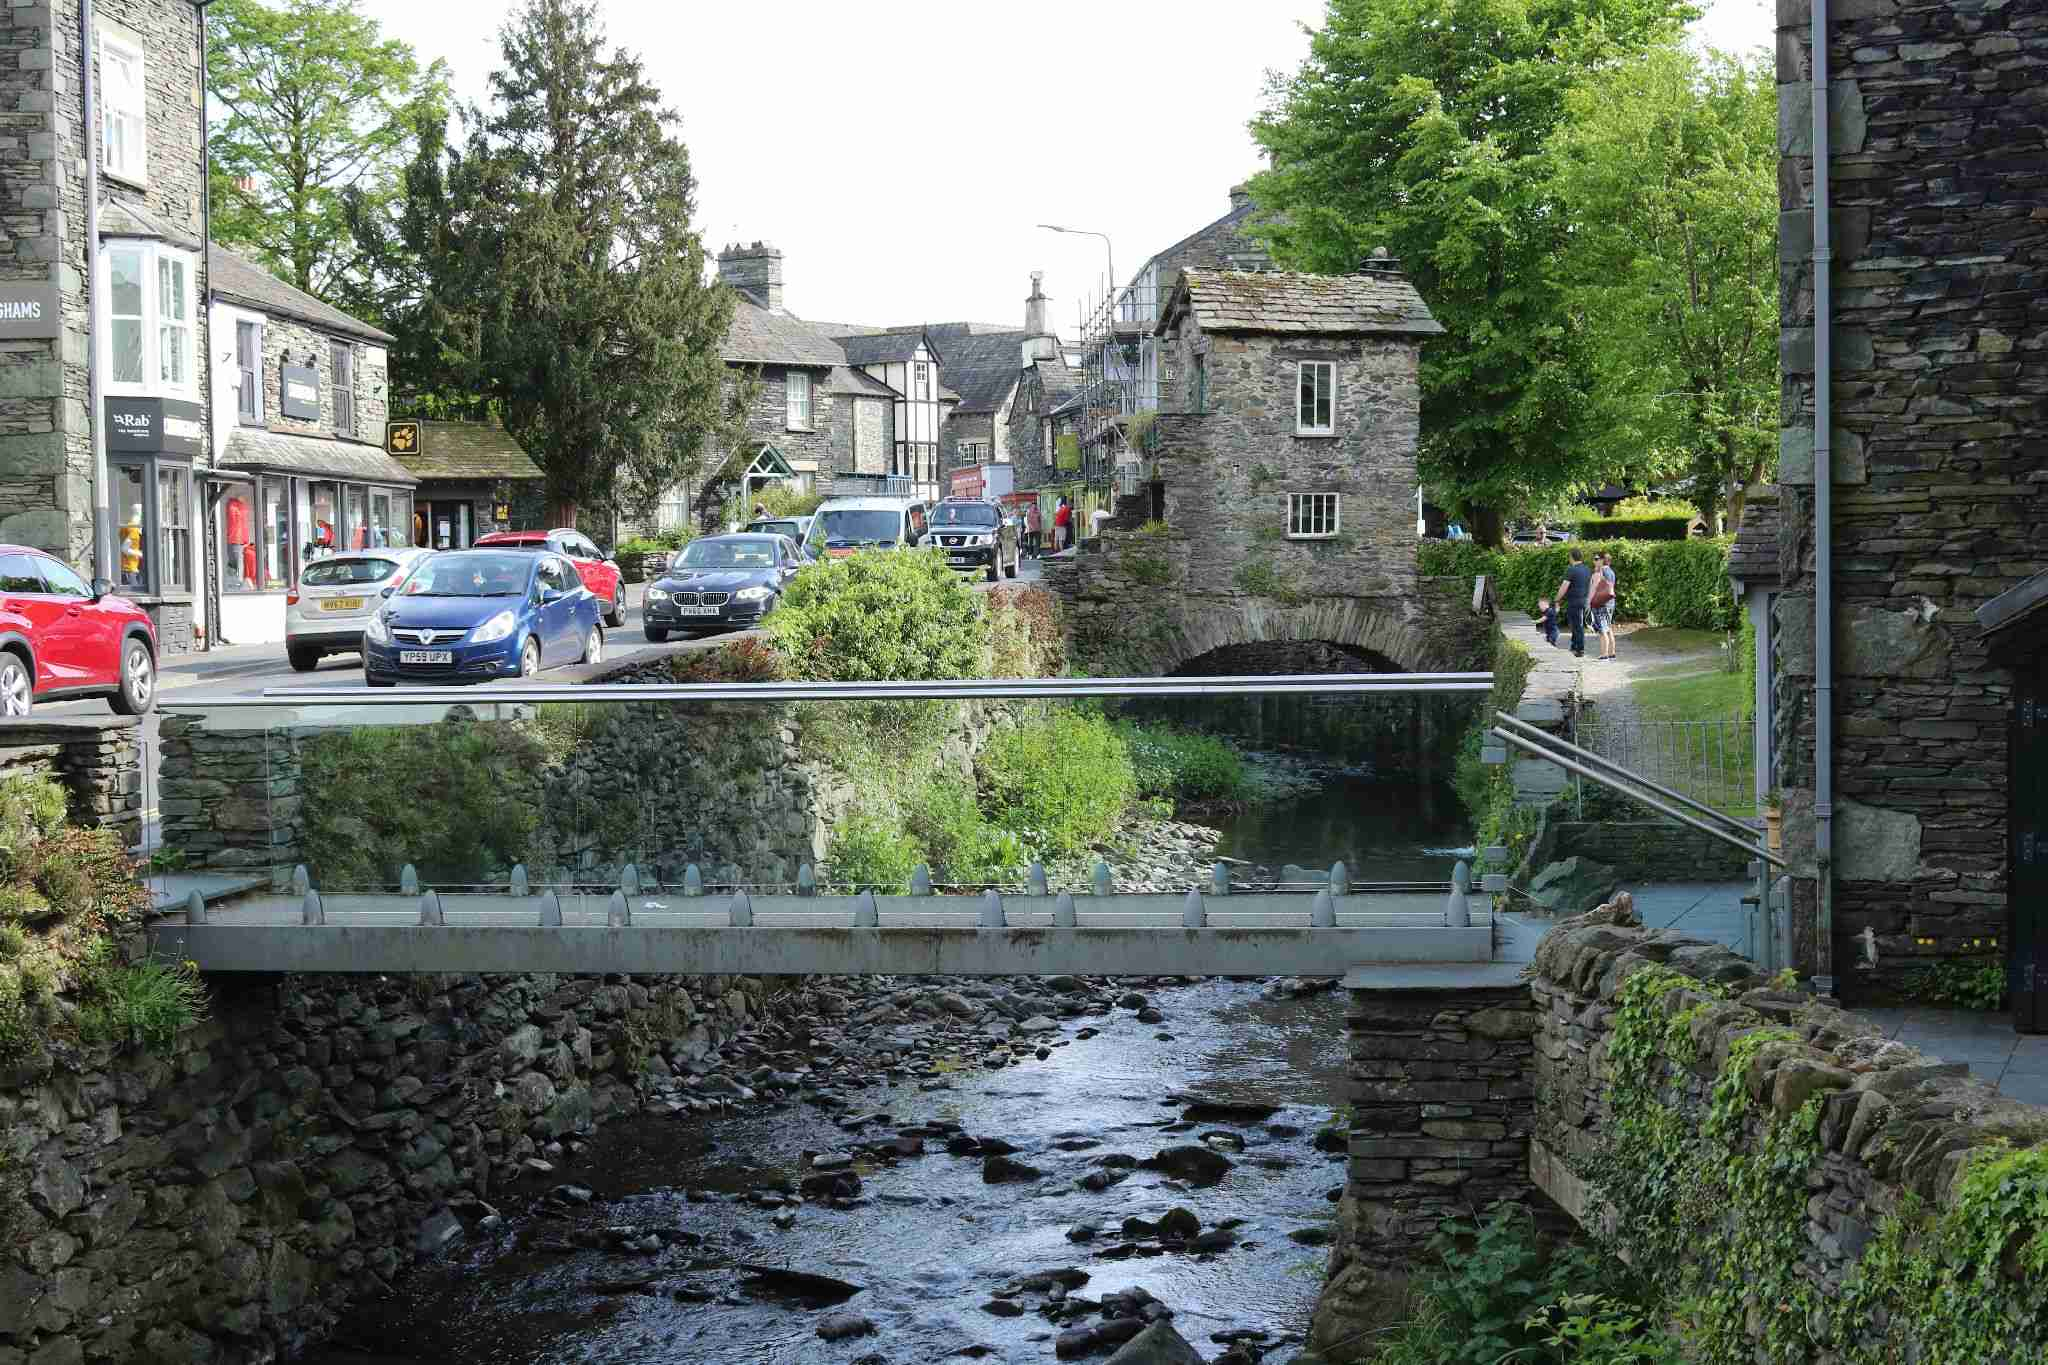 Stock ghyll in Ambleside